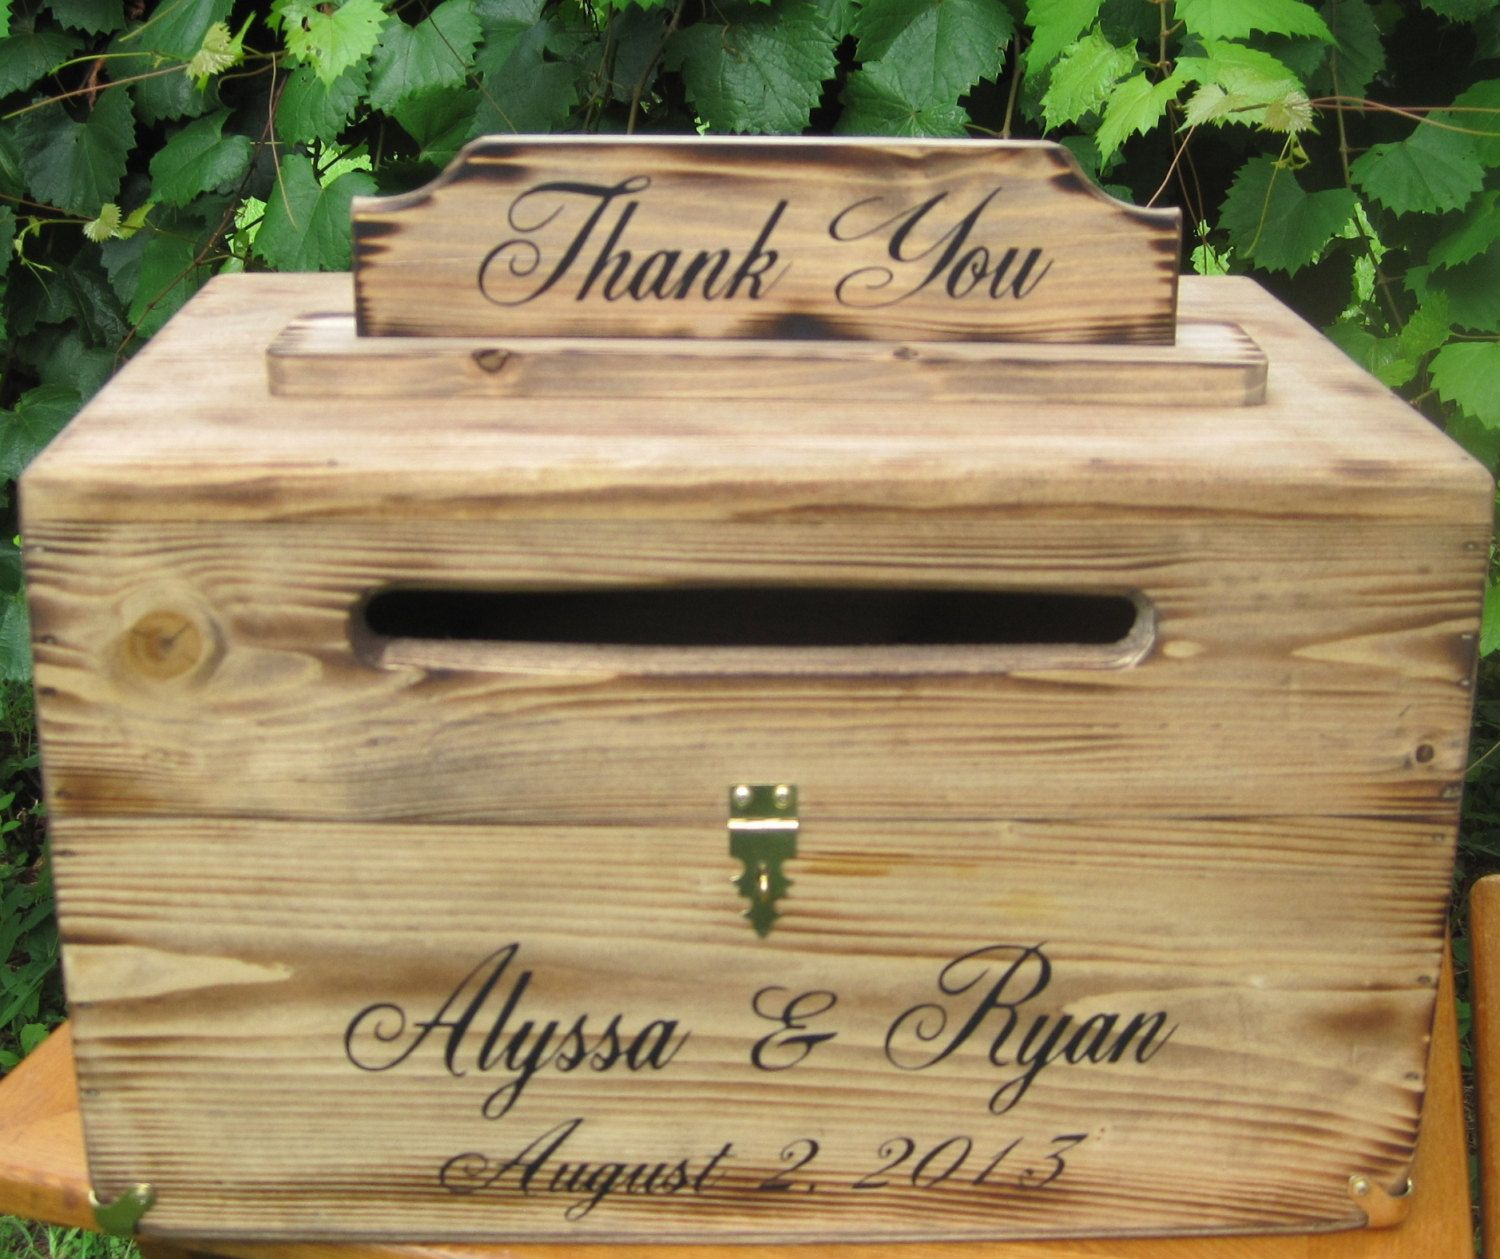 0fabebe0531 Wedding Rustic Card Box Country Chest Cards Thank You woodland Personalized  Custom Wood wooden Barn style card holder - pinned by pin4etsy.com